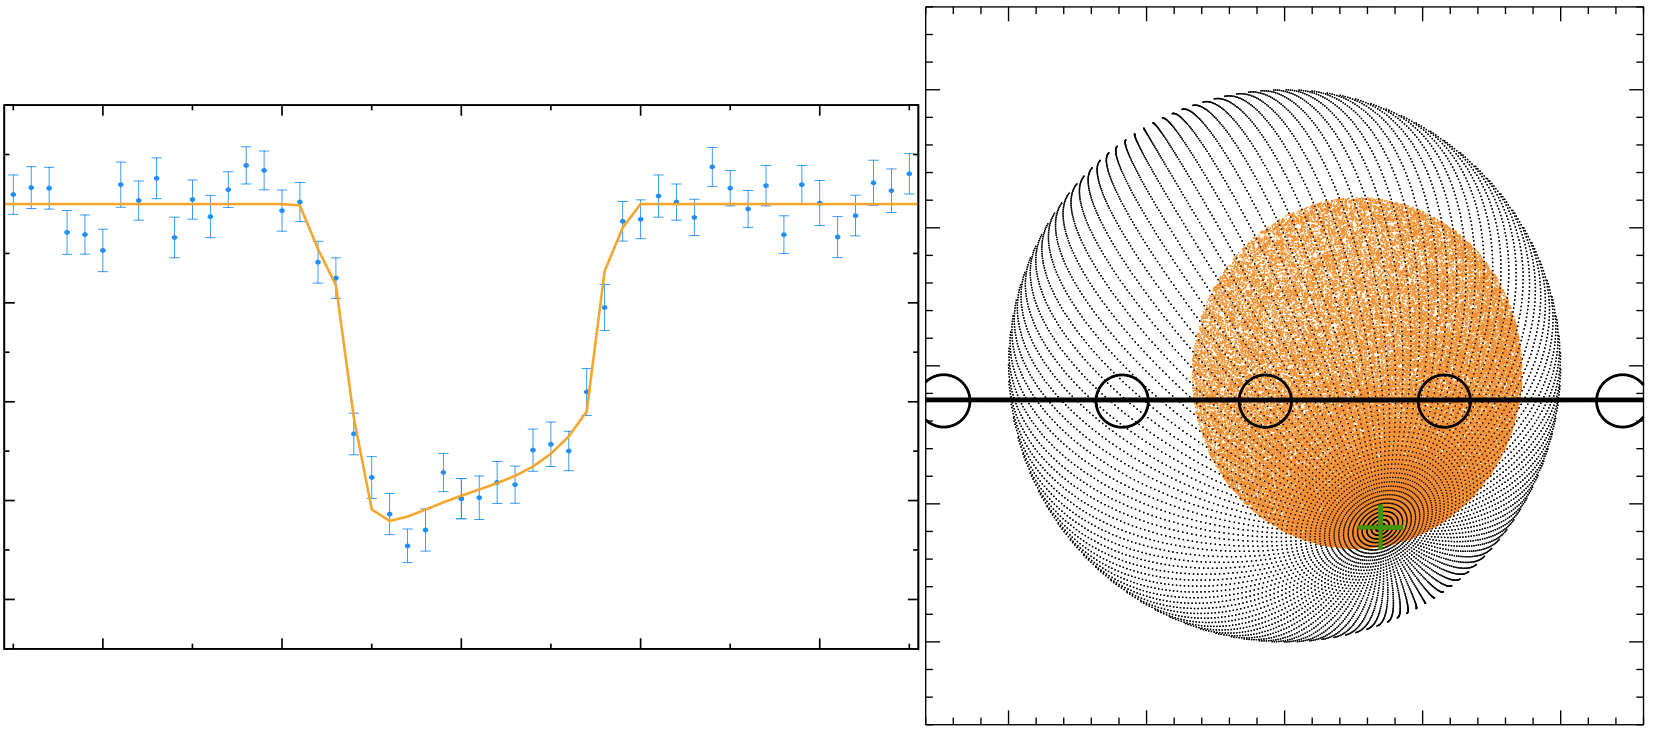 (left) CoRoT-29 b transit light curve. (right) Planet transiting star spot.